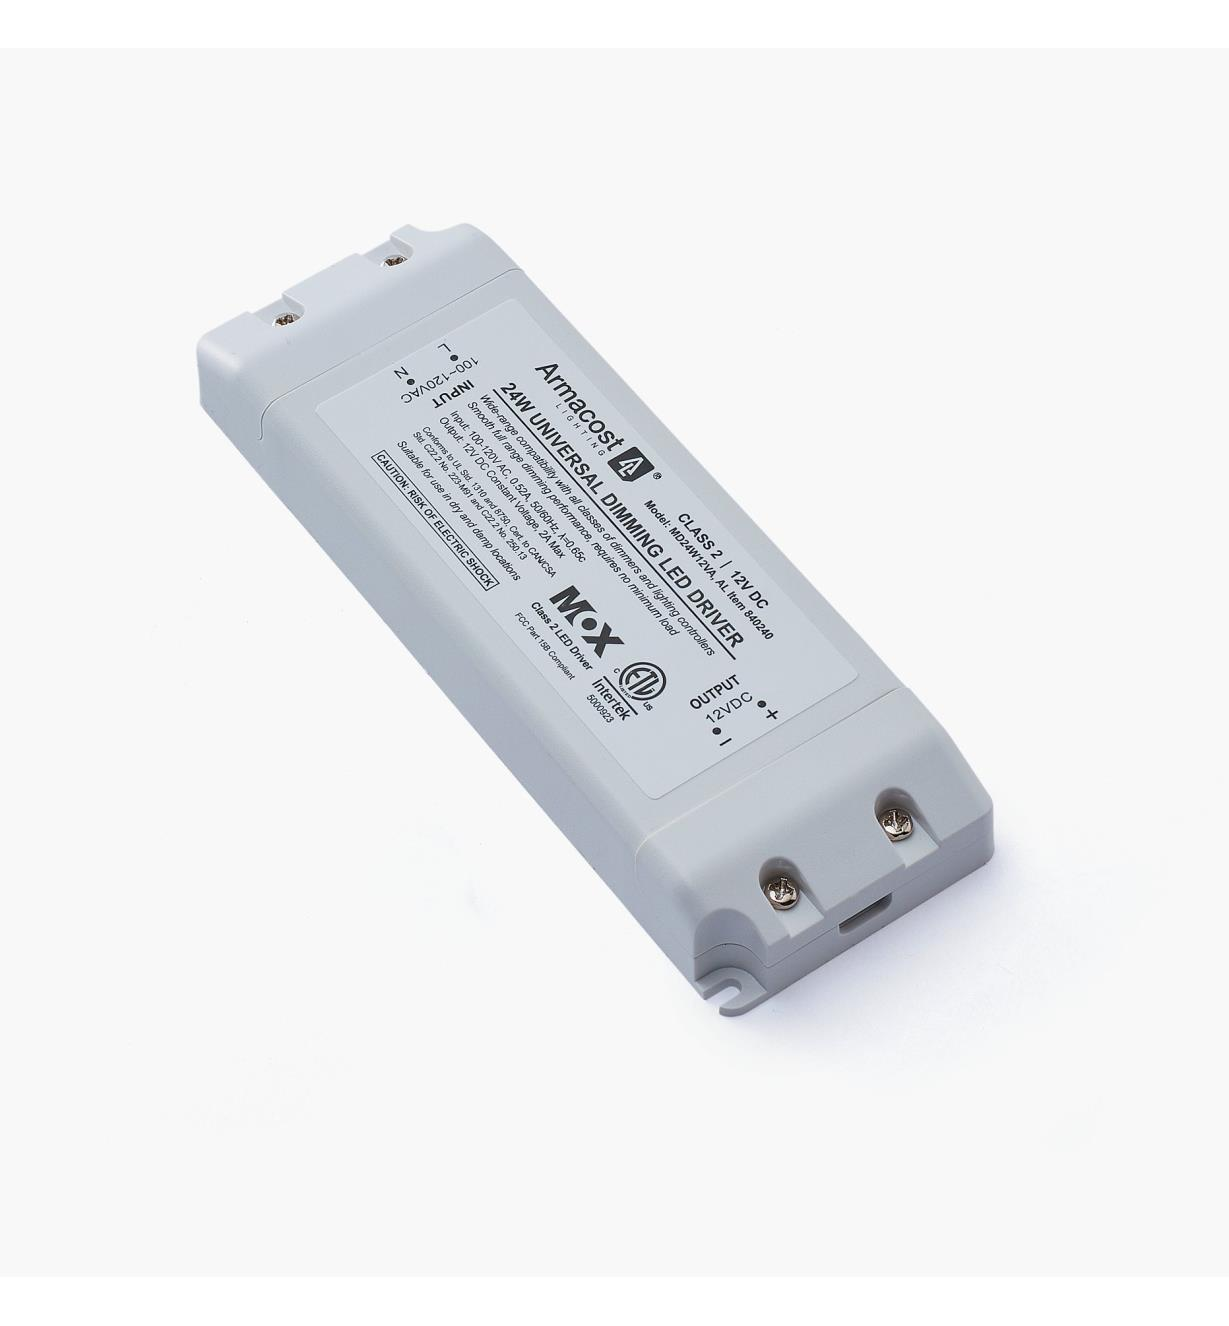 00U4320 - AC-Dimmable Power Supply, 24W